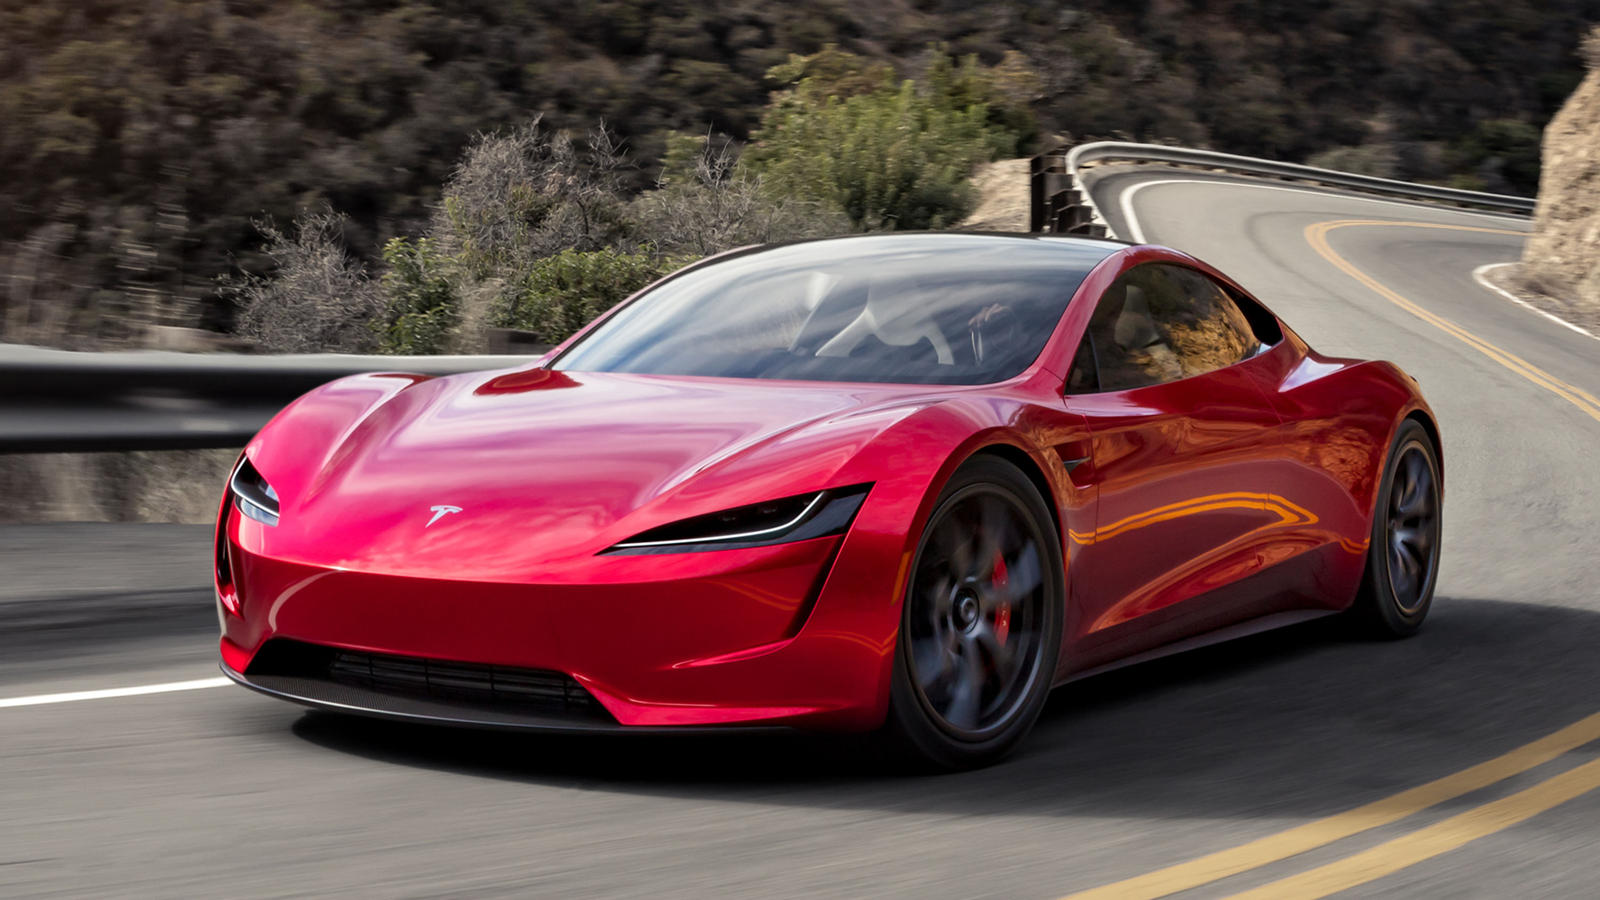 2022 Tesla Roadster: Review, Trims, Specs, Price, New Interior Features, Exterior Design, and Specifications | CarBuzz